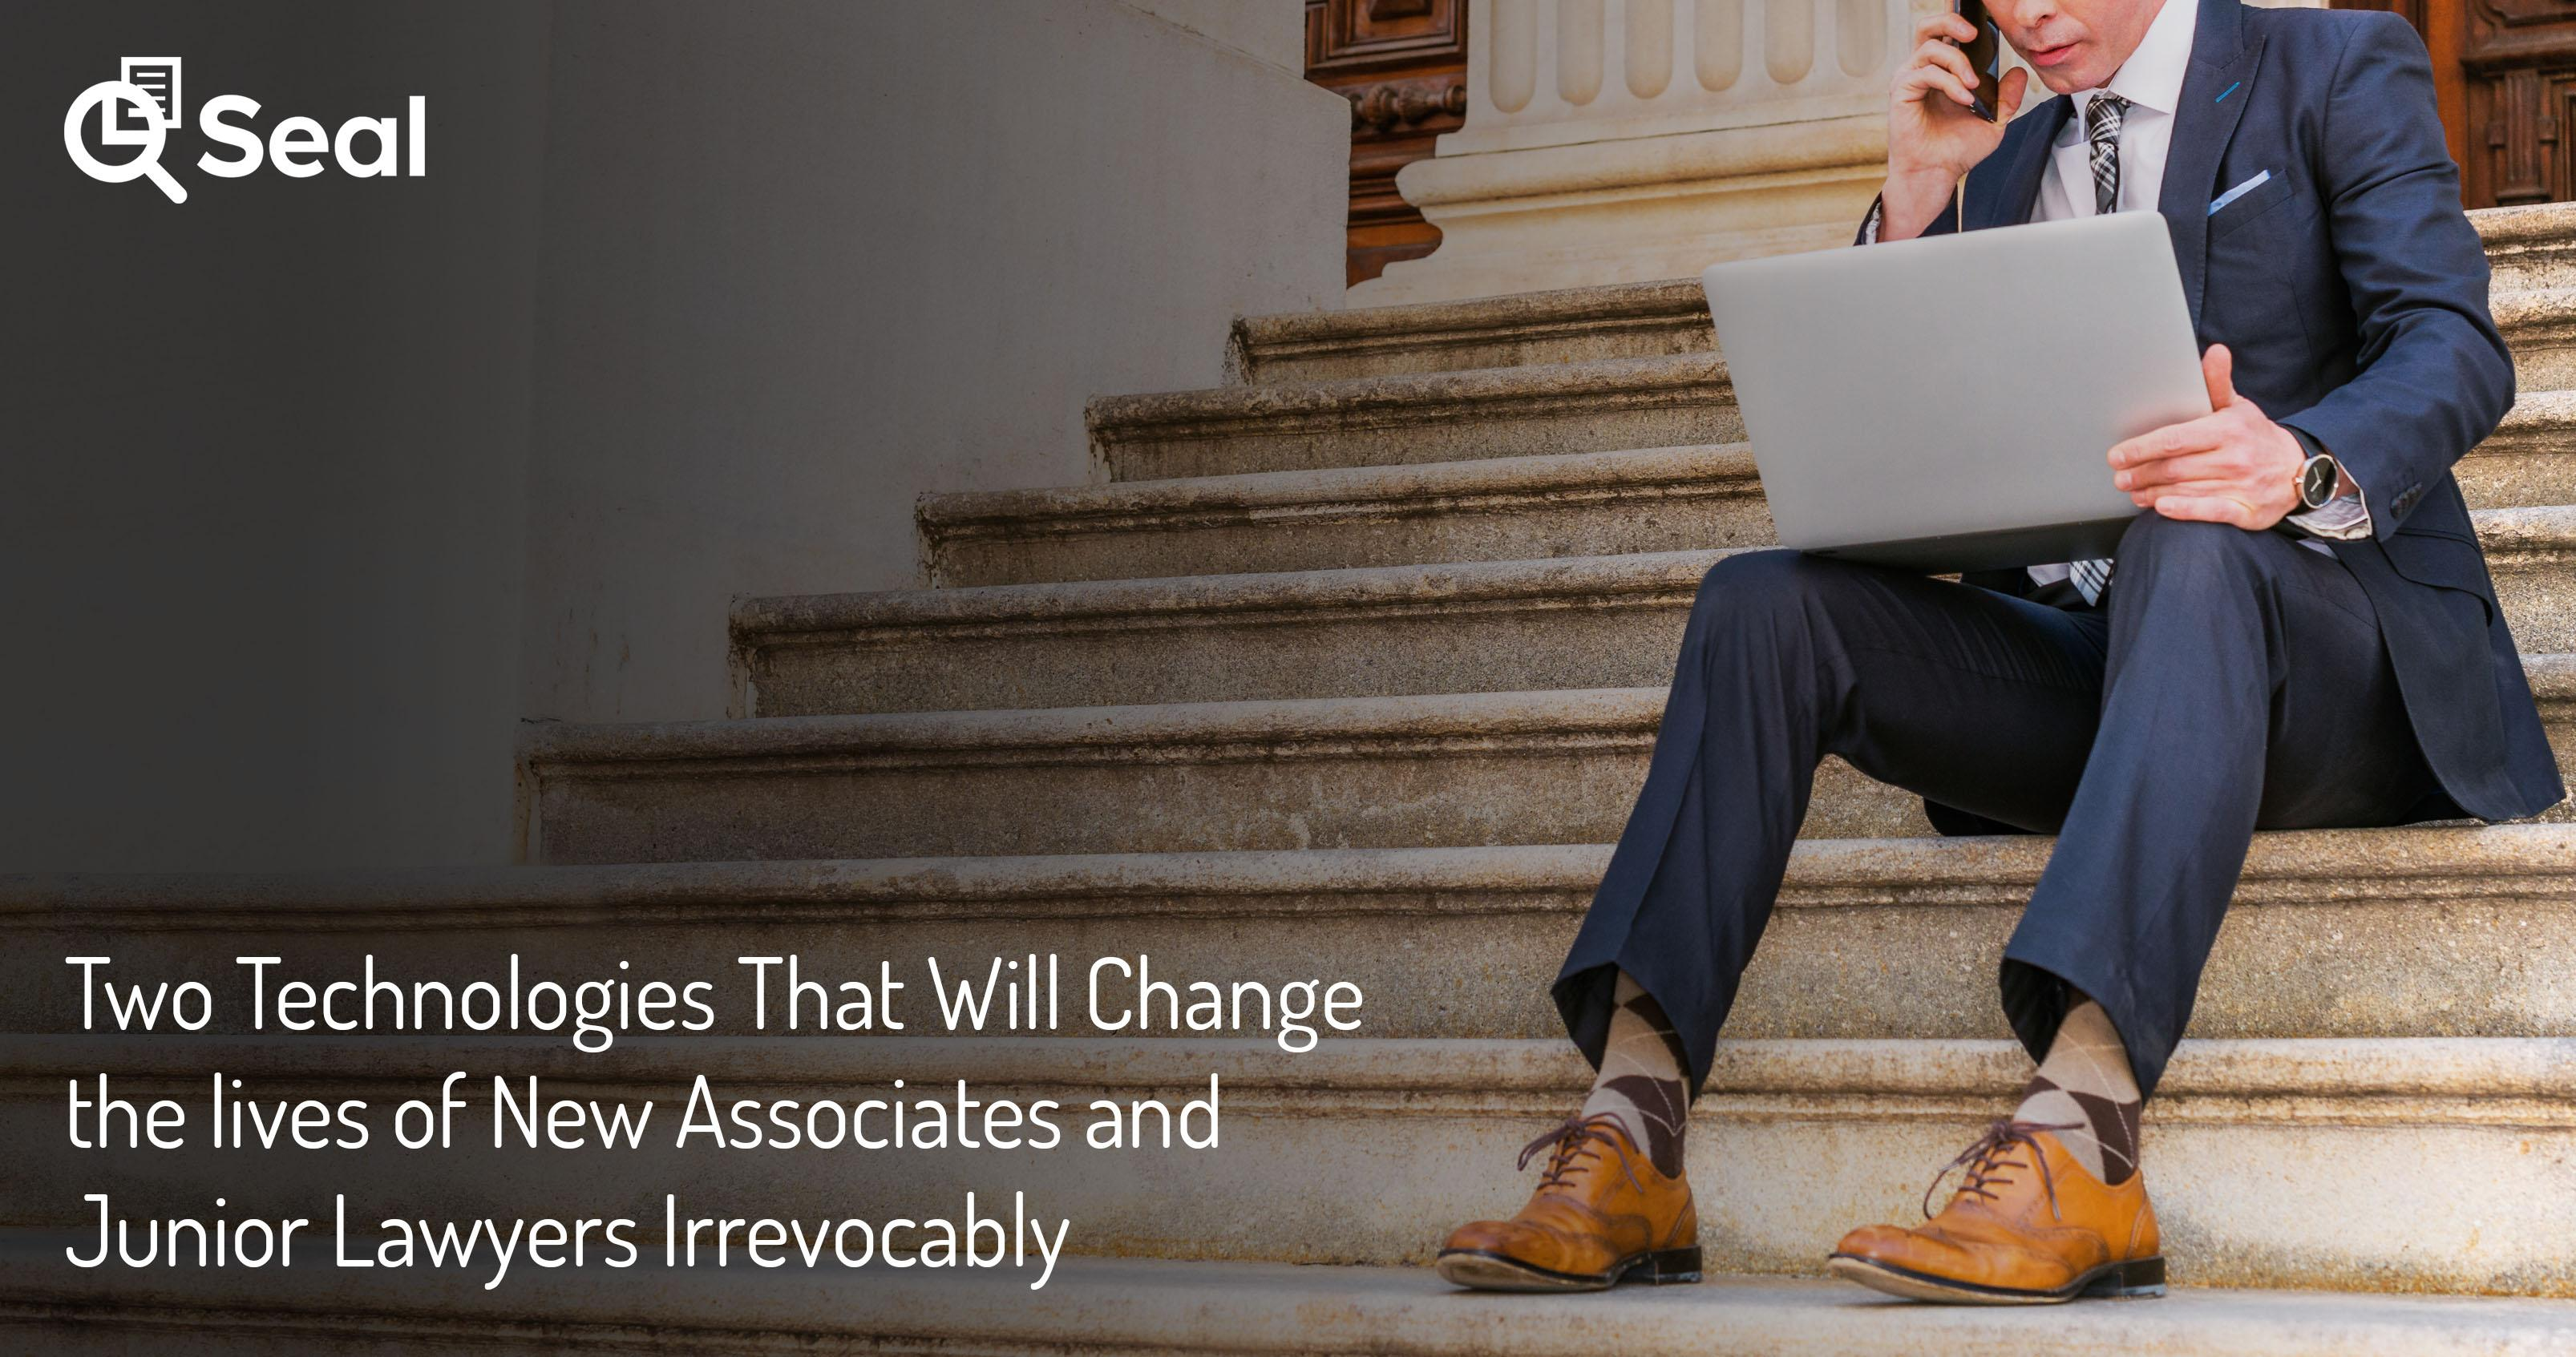 Two Technologies That Will Change the lives of New Associates and Junior Lawyers Irrevocably